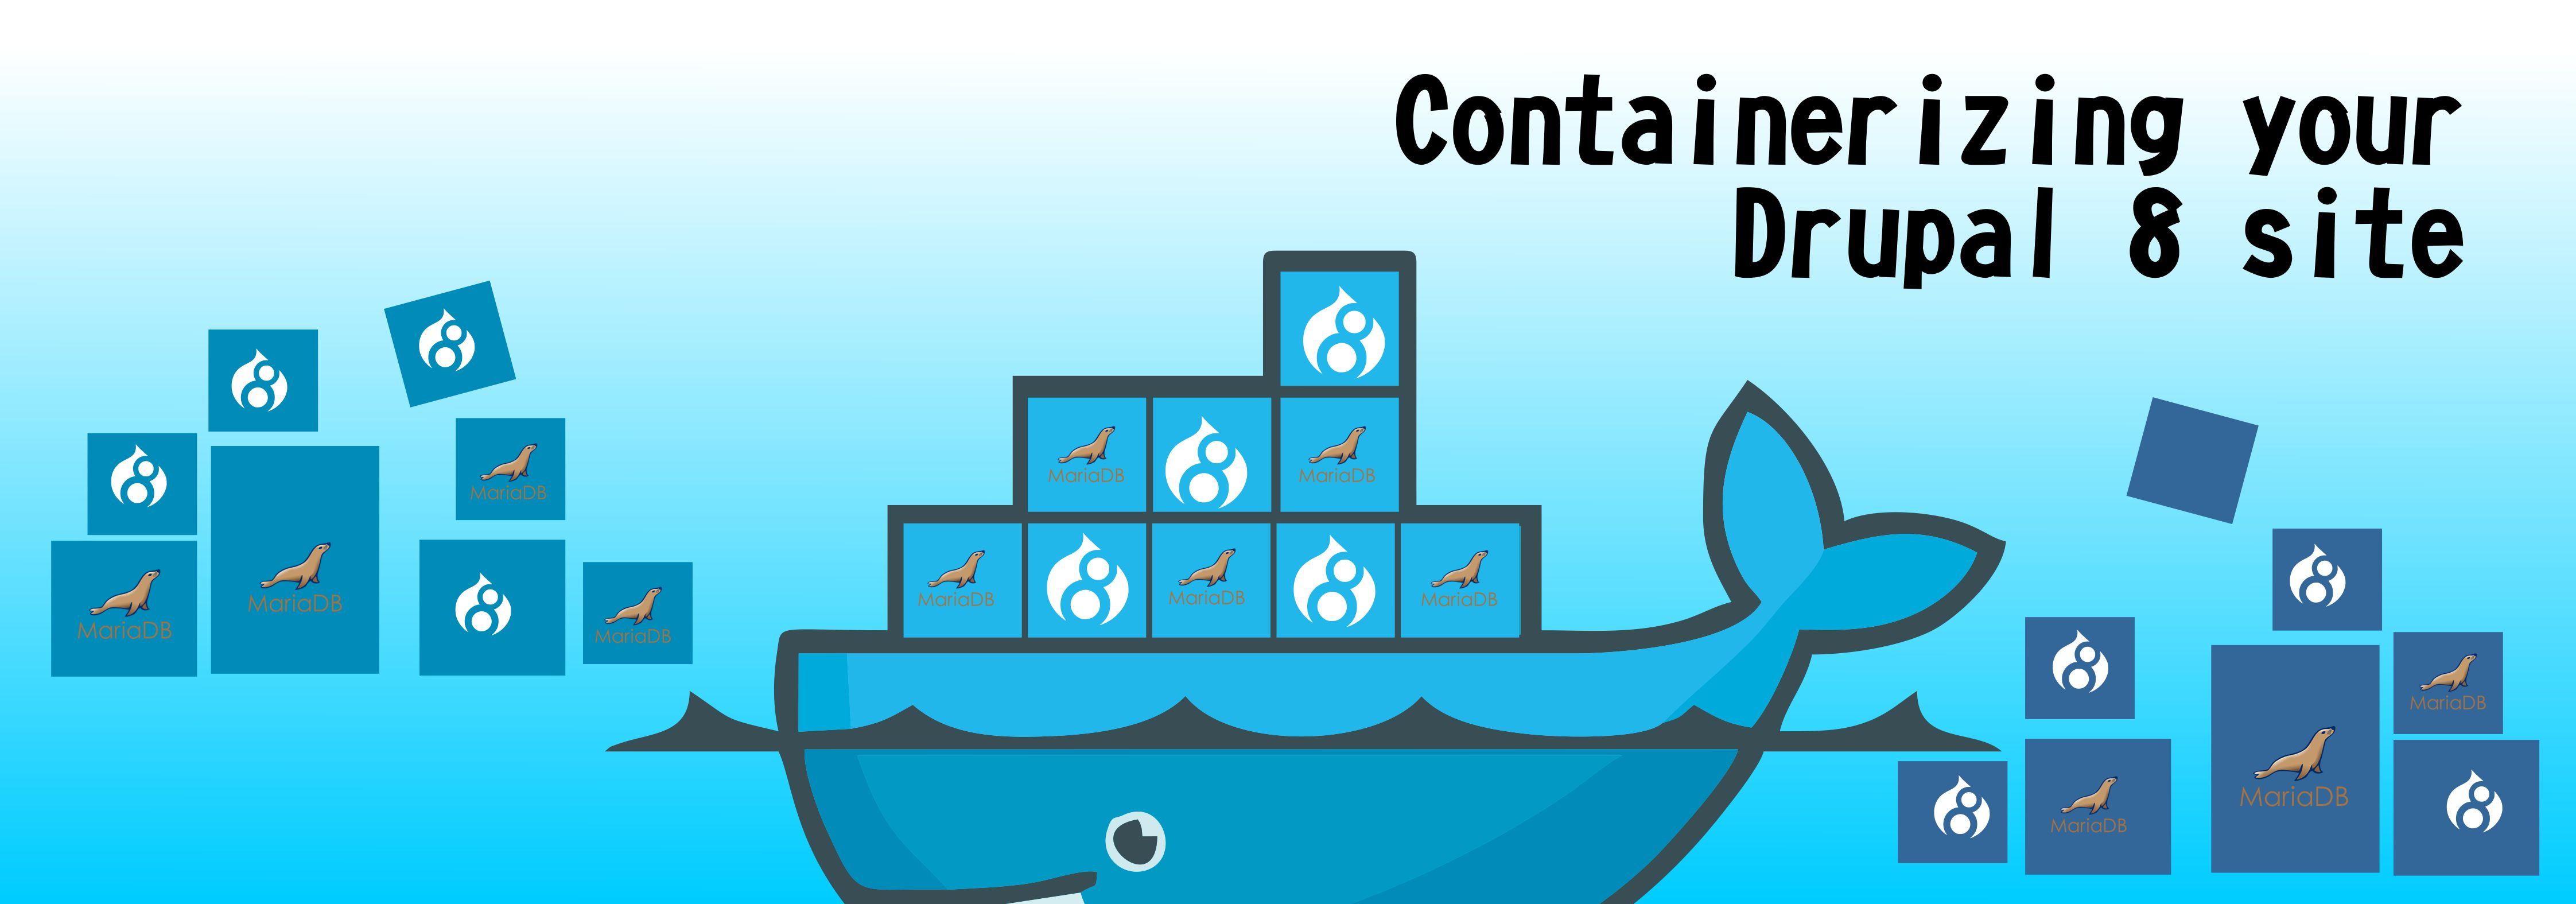 ShapeBlock - Local Drupal development using Docker